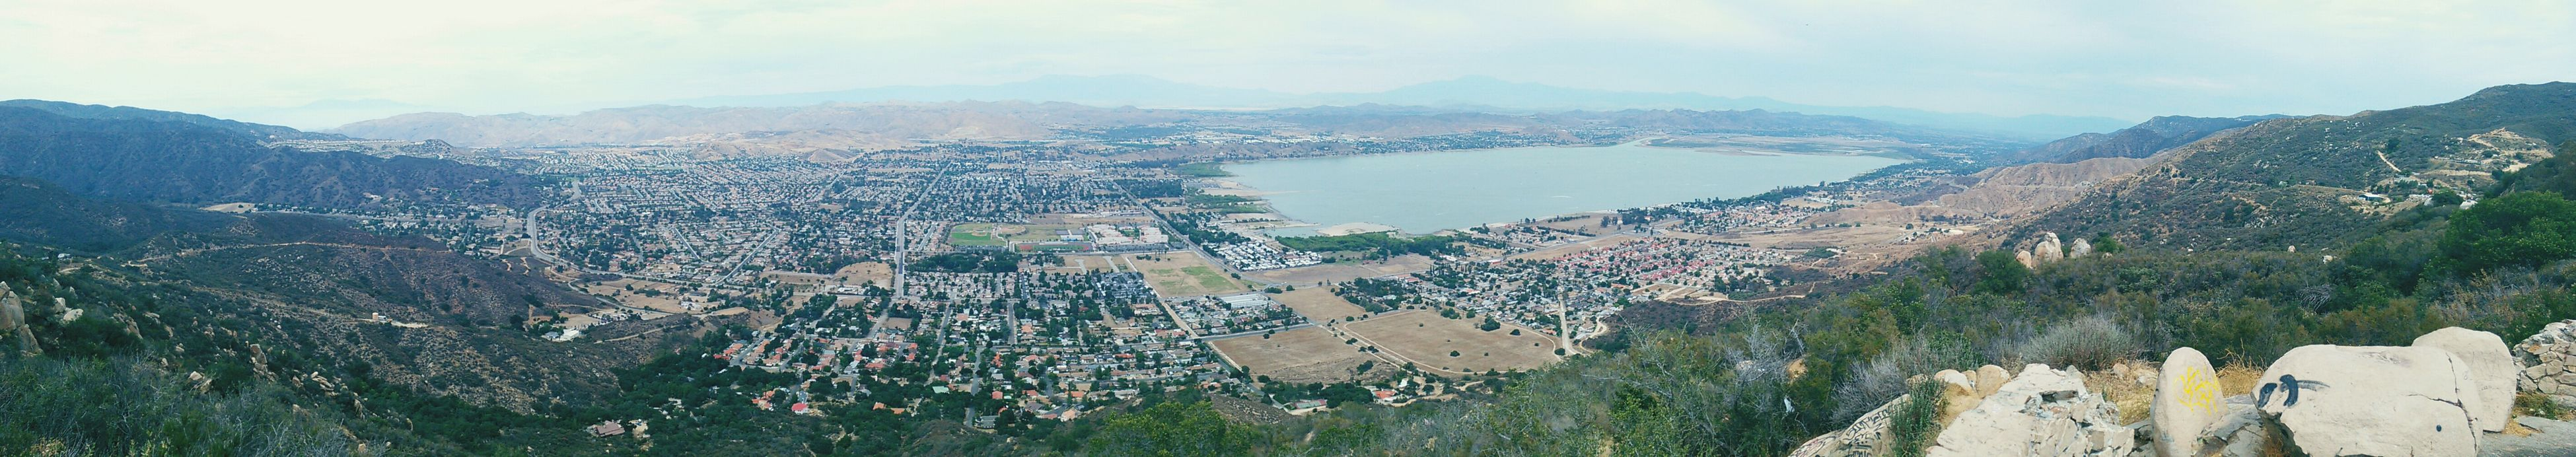 Overlooking Lakeelsinore and the town of Lake Elsinore from the Lookout on Highway 74 aka the Ortega Highway a beautiful but treacherous stretch oh highway beginning in Orangecounty  in the coastal town of Sanjuancapistrano snaking about 35 miles through the Santa Ana mountain range and emerging in Riverside County and the town of Lake Elsinore. It is 3:20 on a Sunfay Afternoon anf the current temperature ia a sweltering 93.2° F and Humidity is 27%. Elevation is 2469 ft. Panoramic View Panoramic Landscape Panoramic Photography Riversidecounty Inlandempire